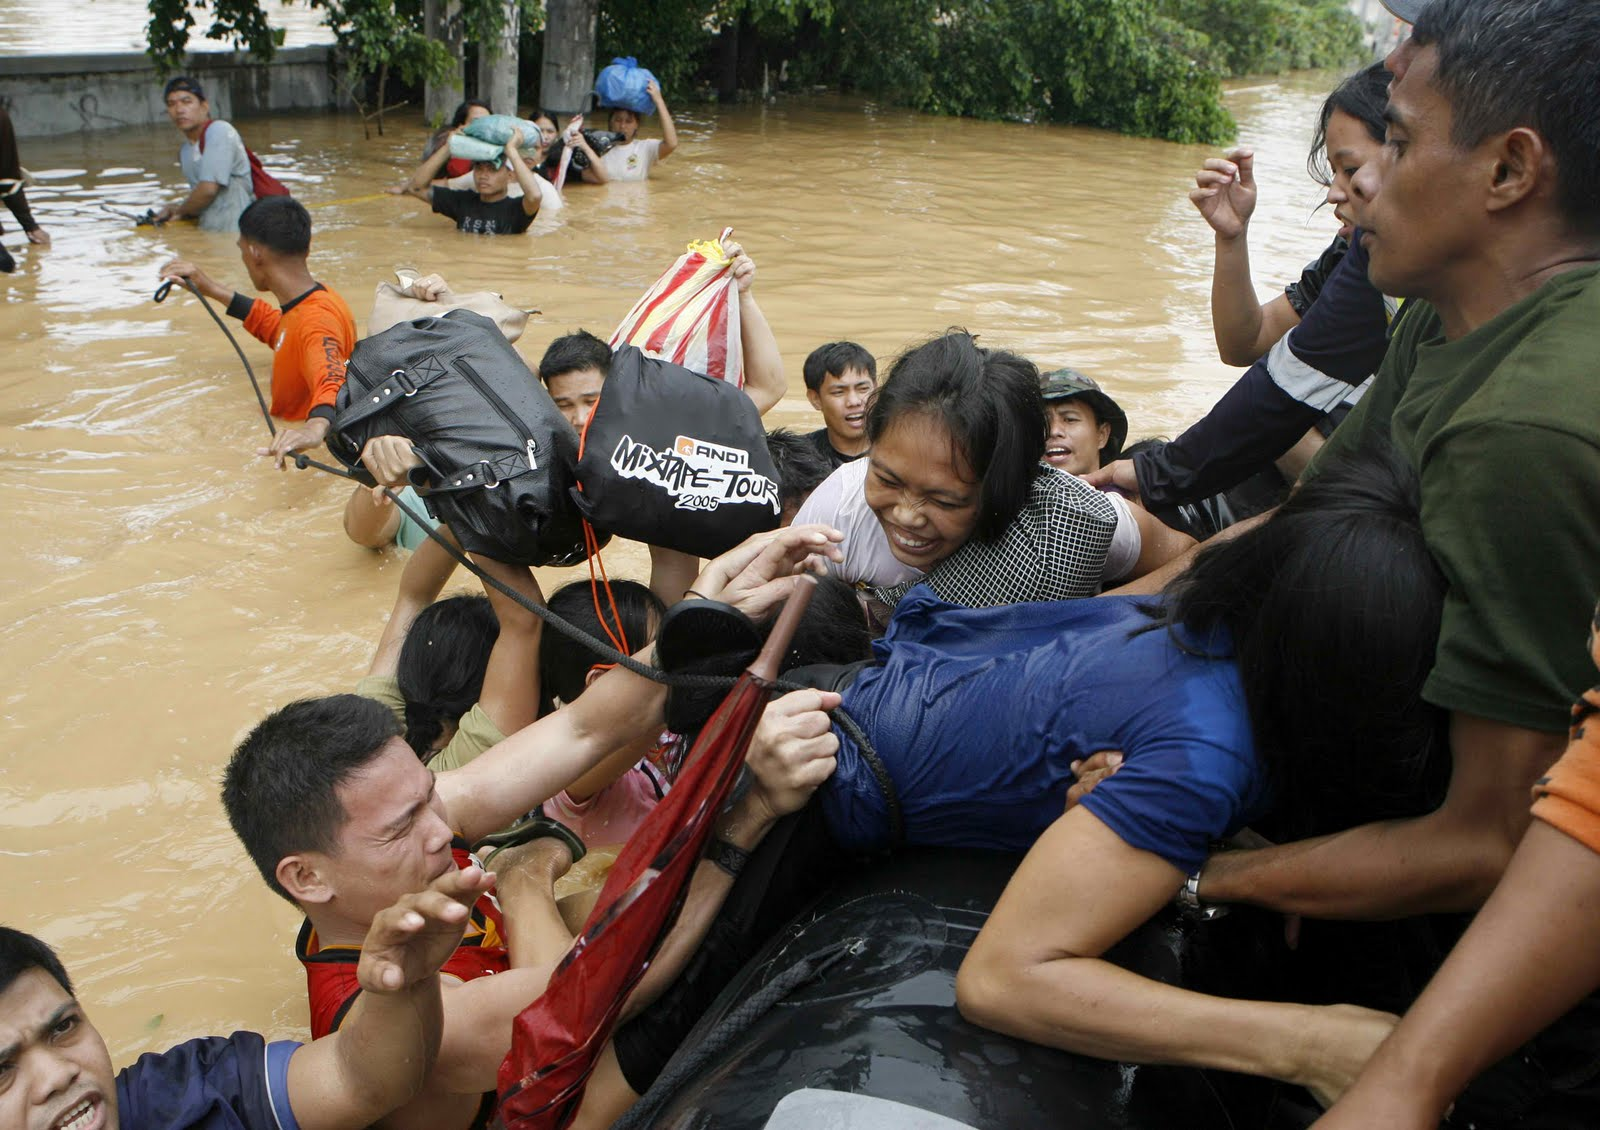 Philippines+Typhoon+Disaster+-+2009 - Philippines - Laughing in the Midst of Disaster - Philippine Photo Gallery